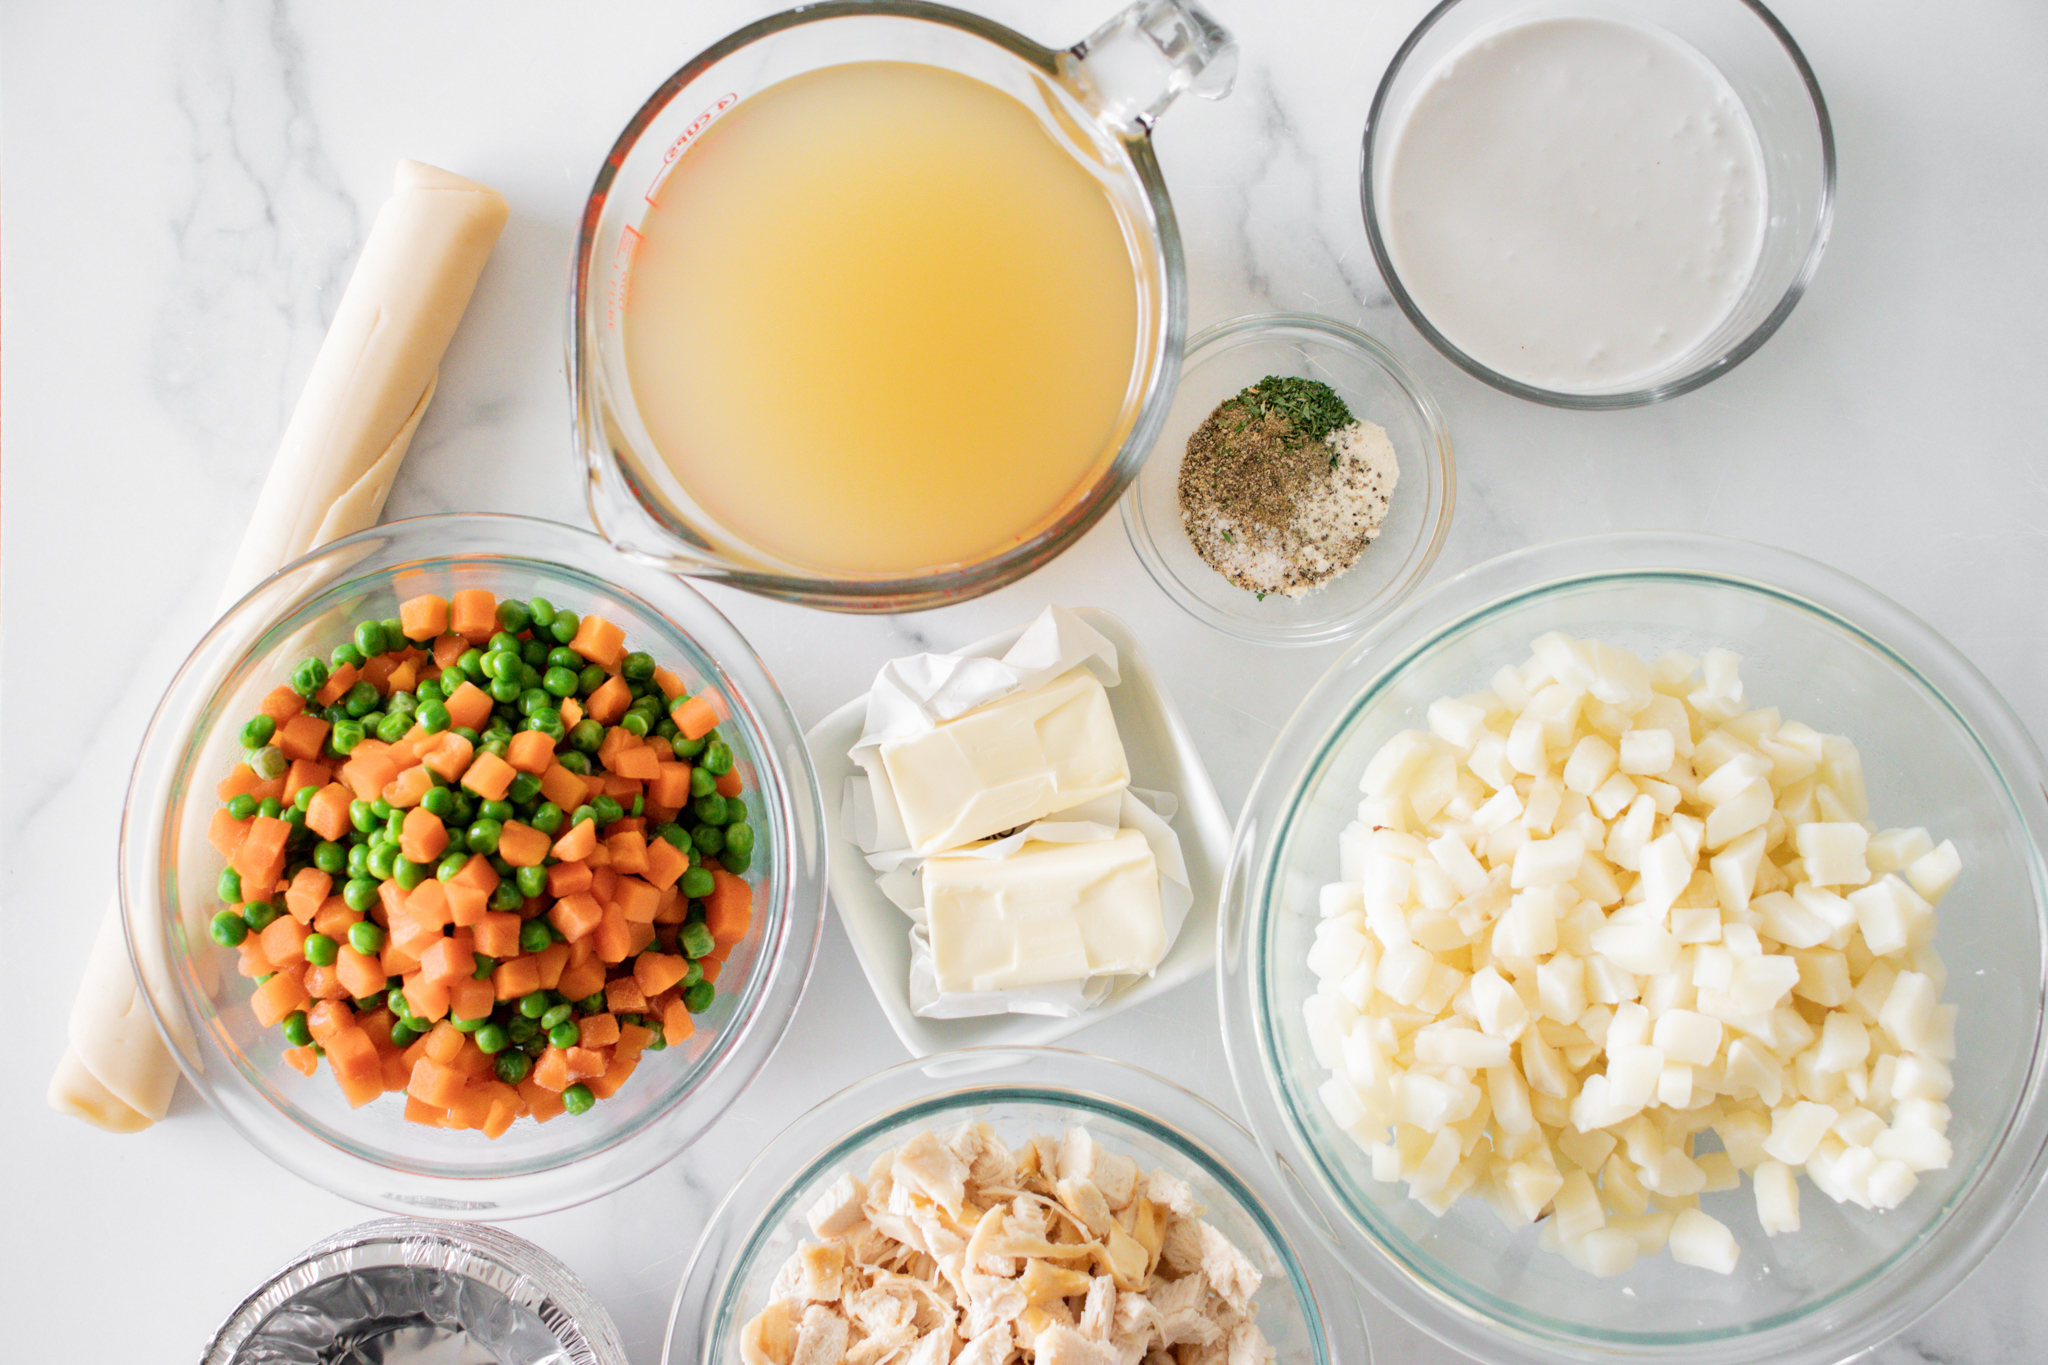 Ingredients for mini chicken pot pies